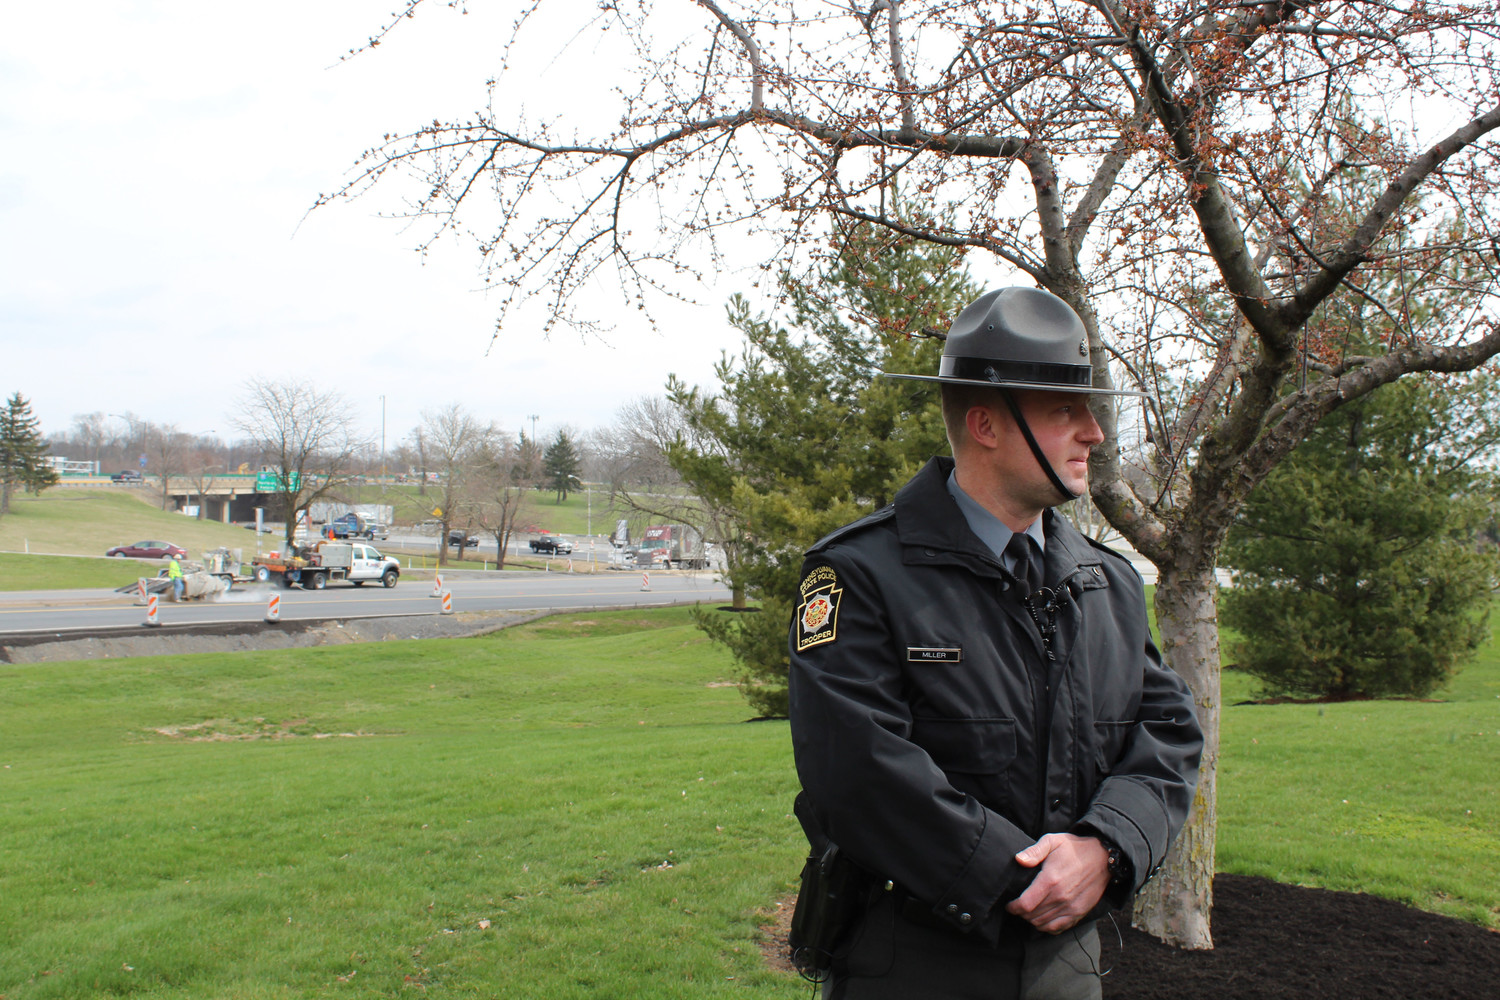 State Trooper Brent Miller stands in front of construction on Route 238 during a press conference on April 6.